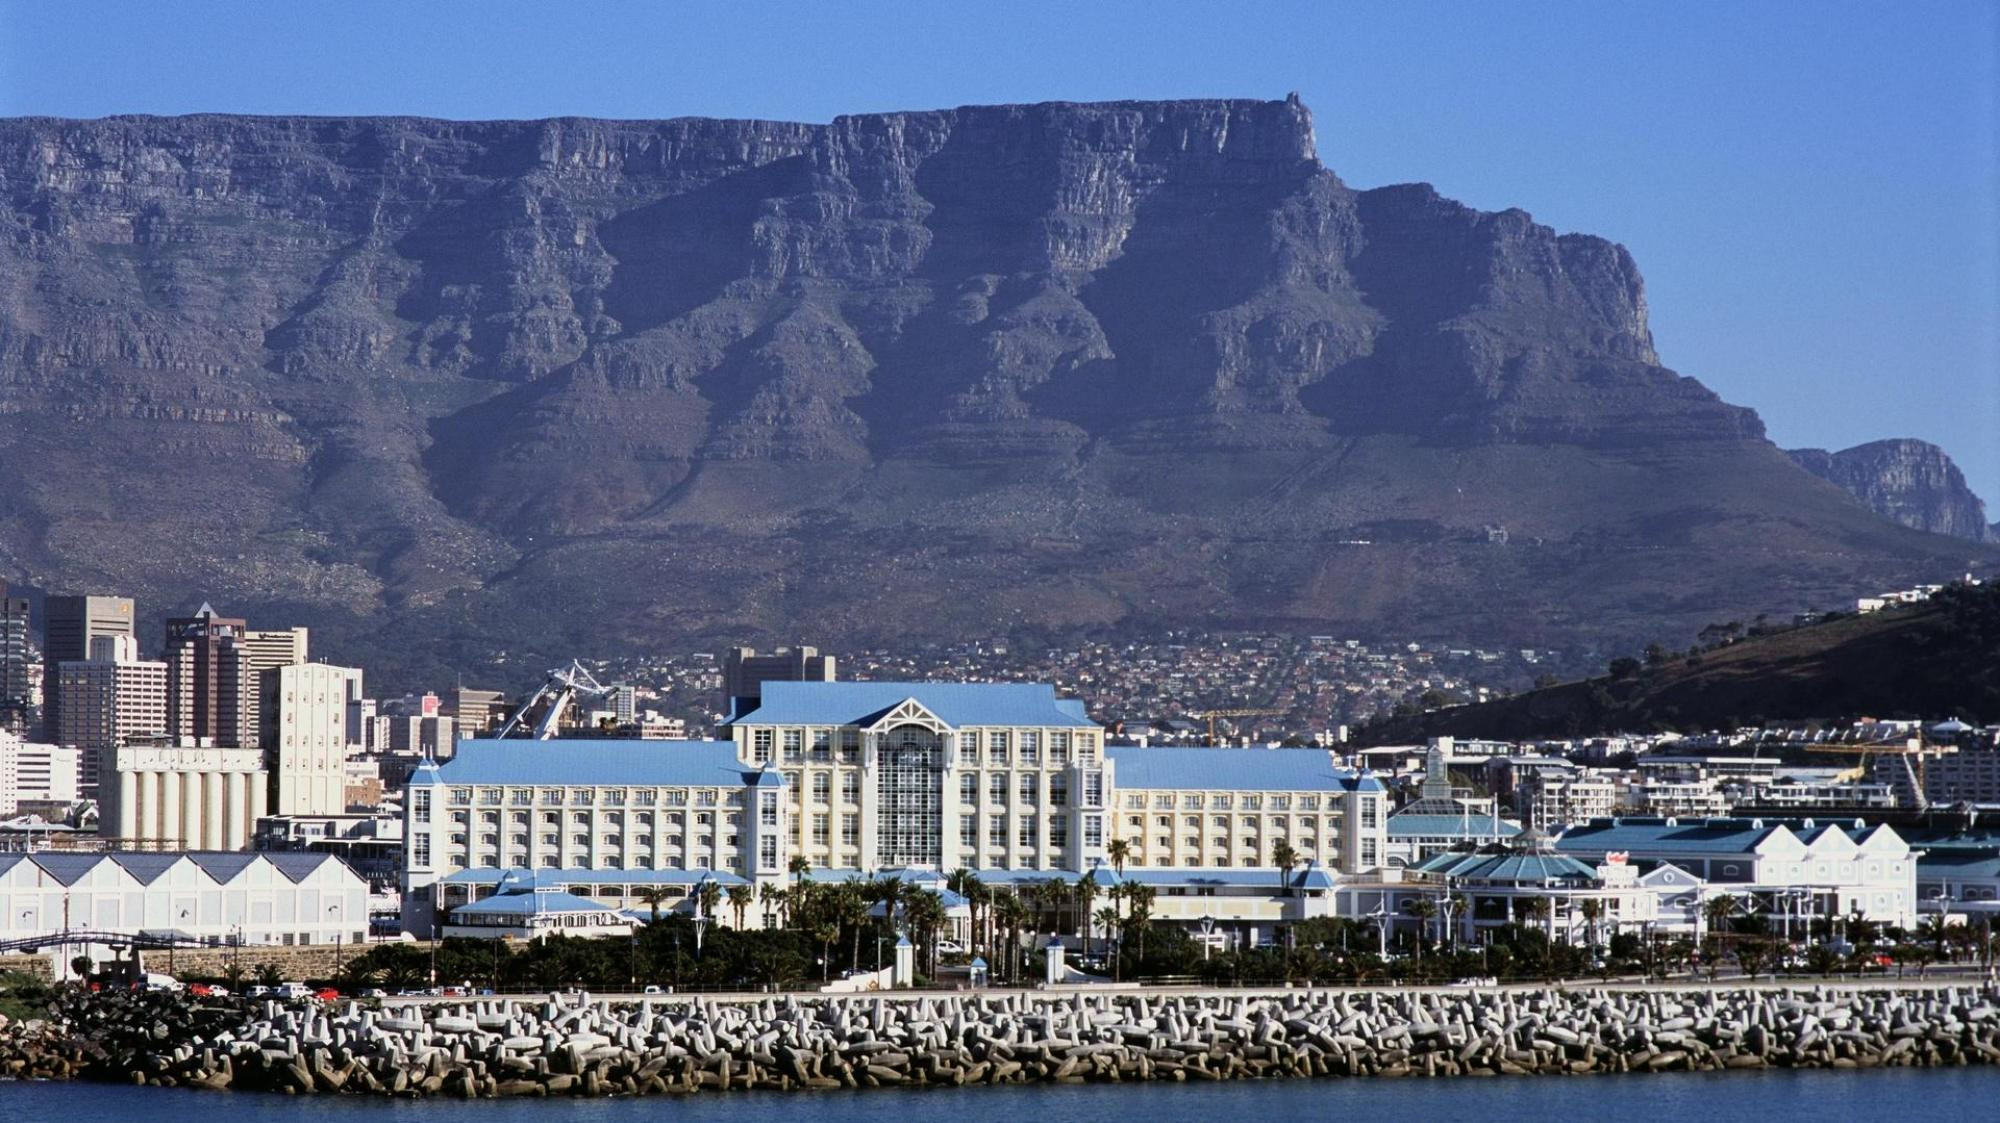 The Table Bay Hotel's scenic view of the Table Mountain in sensational South Africa.